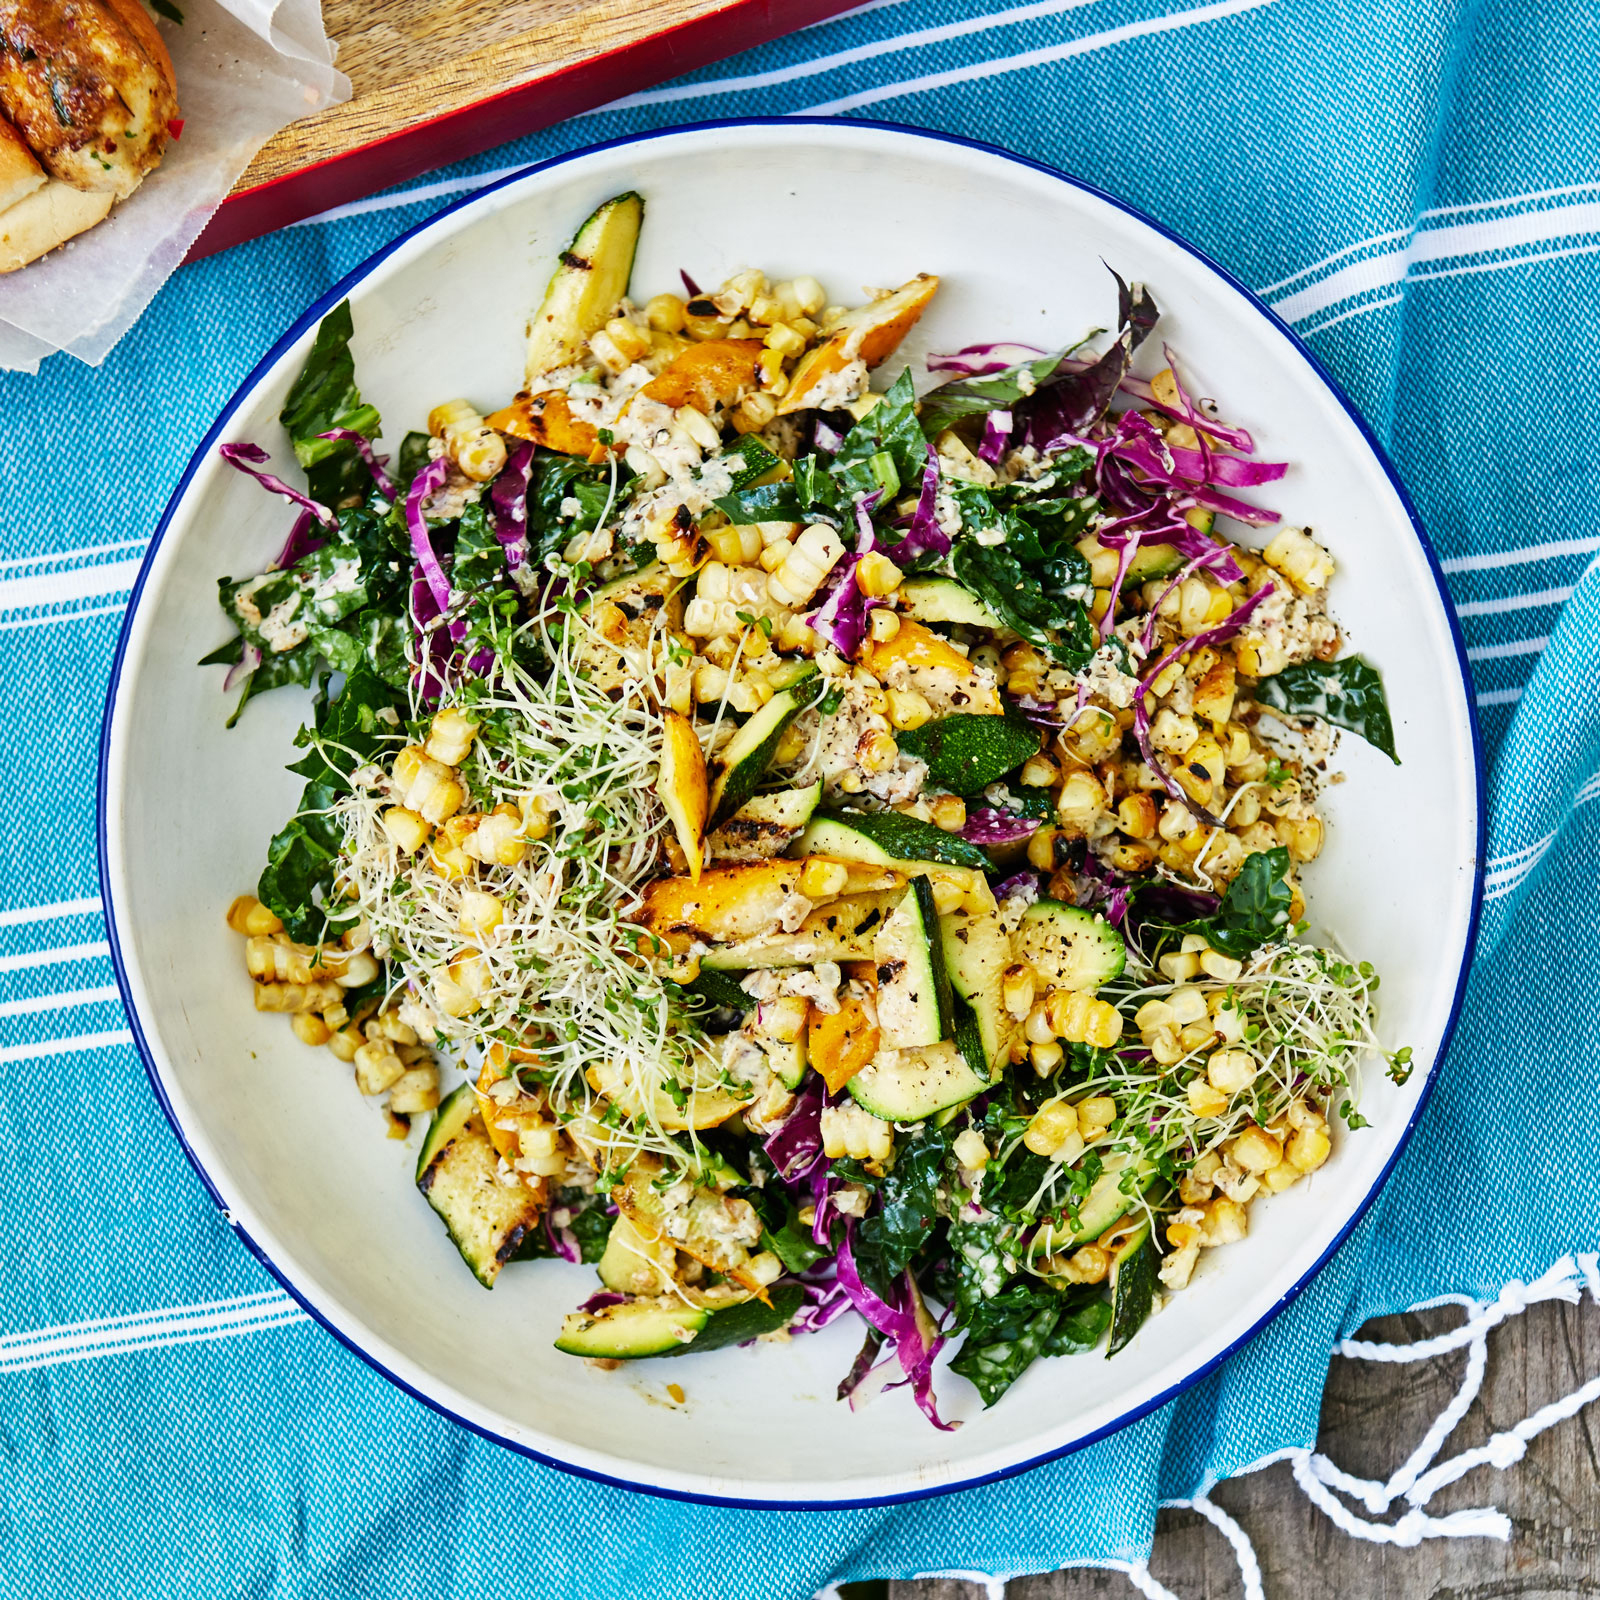 Grilled Squash, Corn and Kale Salad with Sunflower Seed Vinaigrette